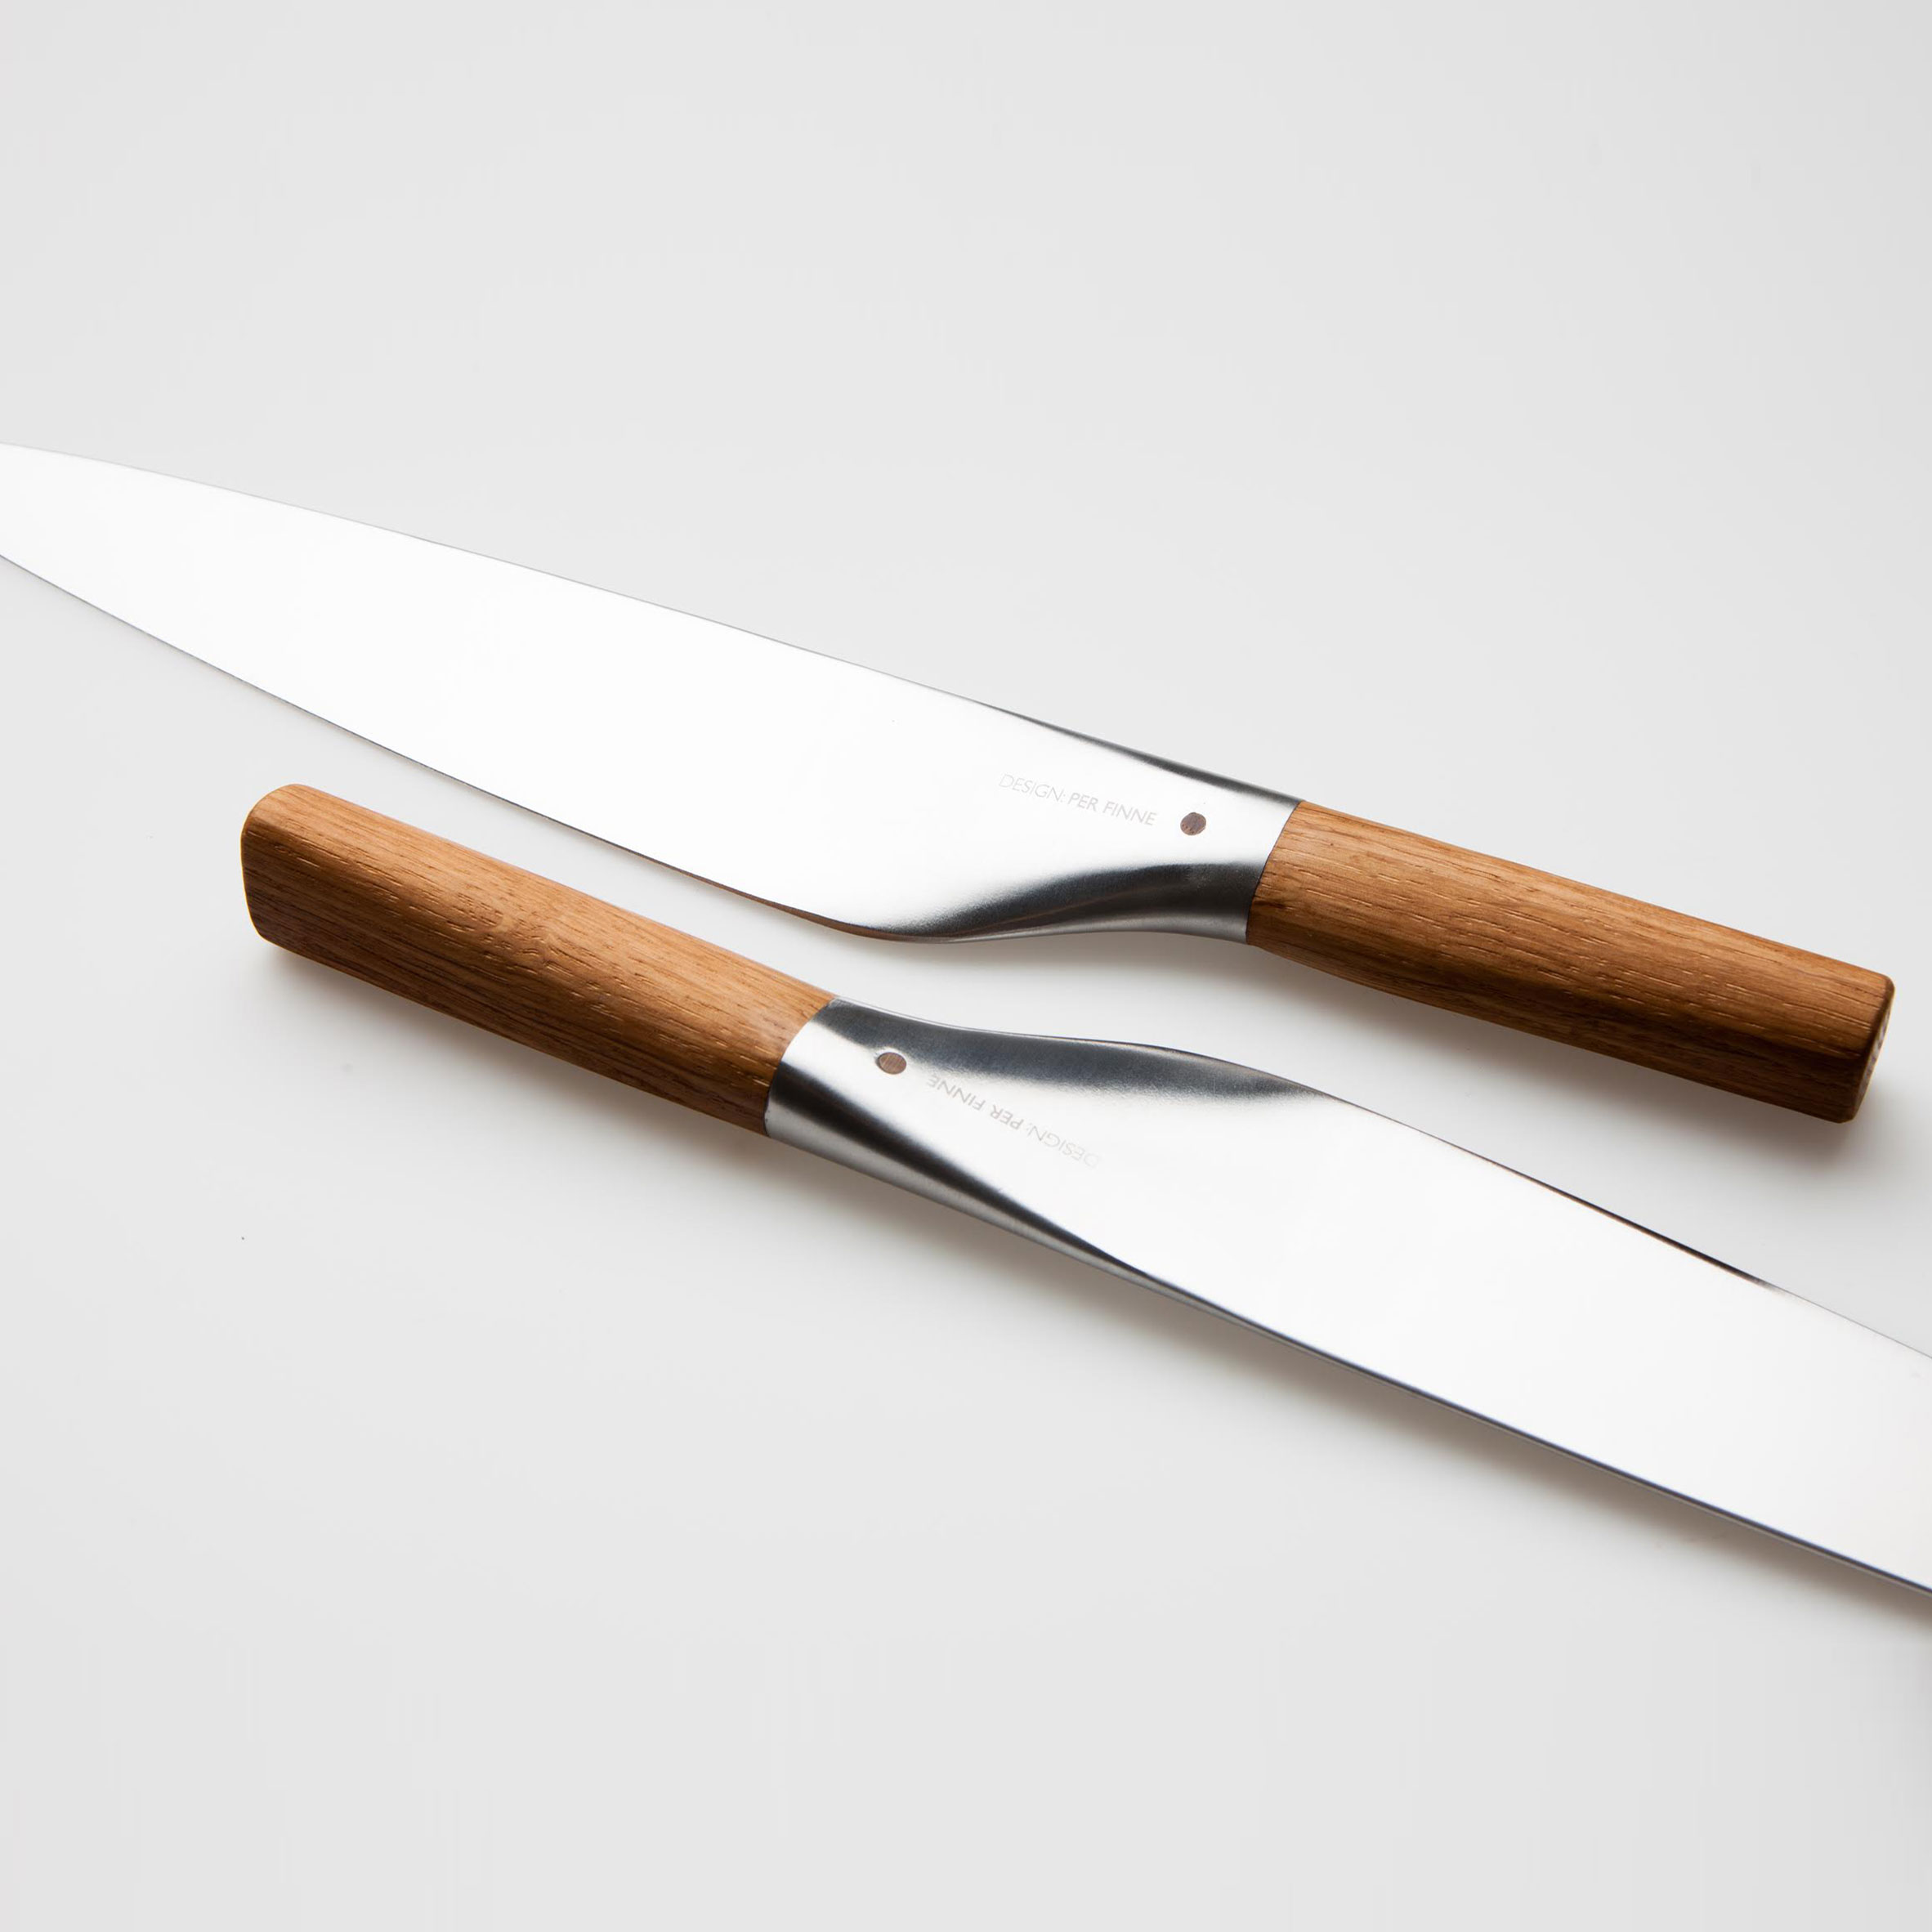 Umami Santoku knife by Per Finne